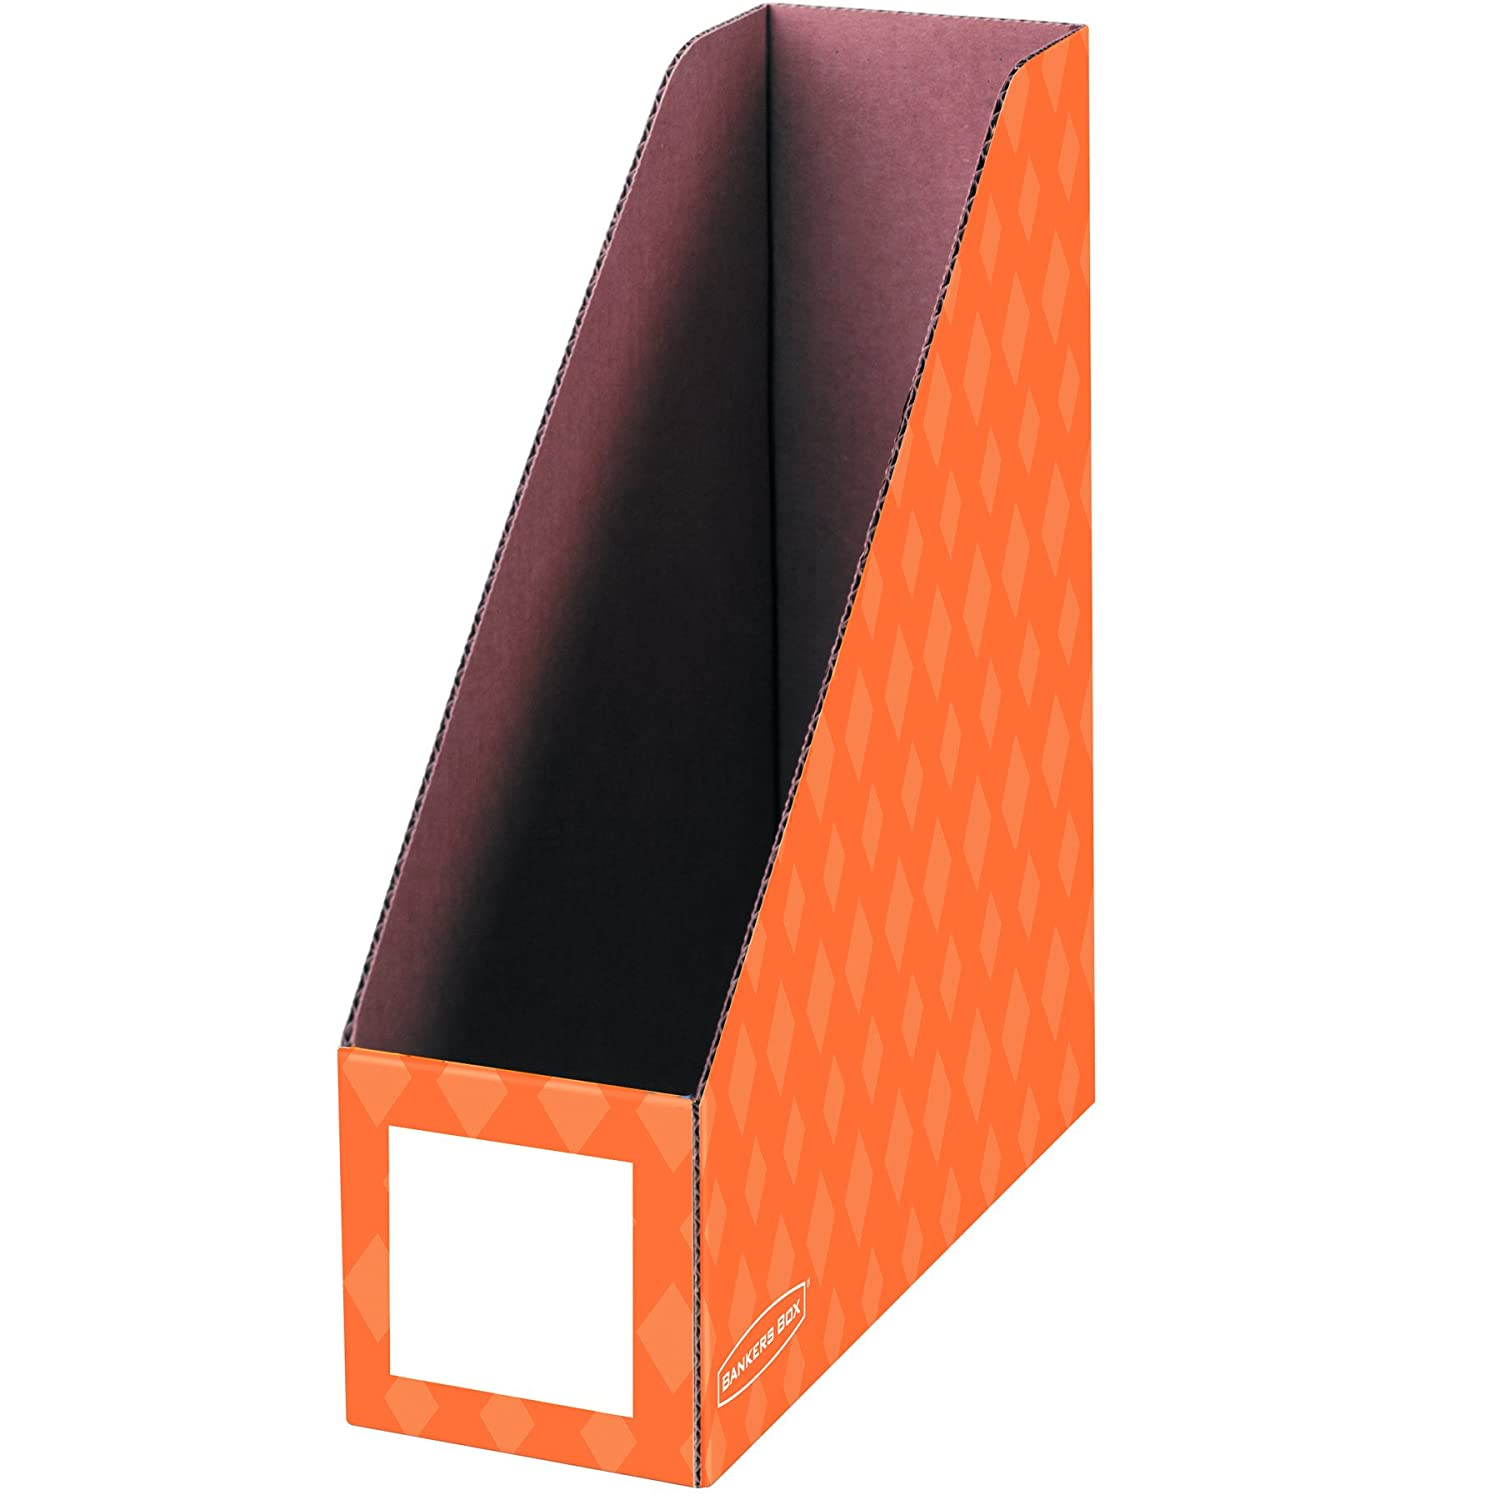 Amazon : Bankers Box Classroom Magazine Fileanizers, 4inch,  Assorted Colors, 6 Pack (3381901) : Magazine Holders : Office Products